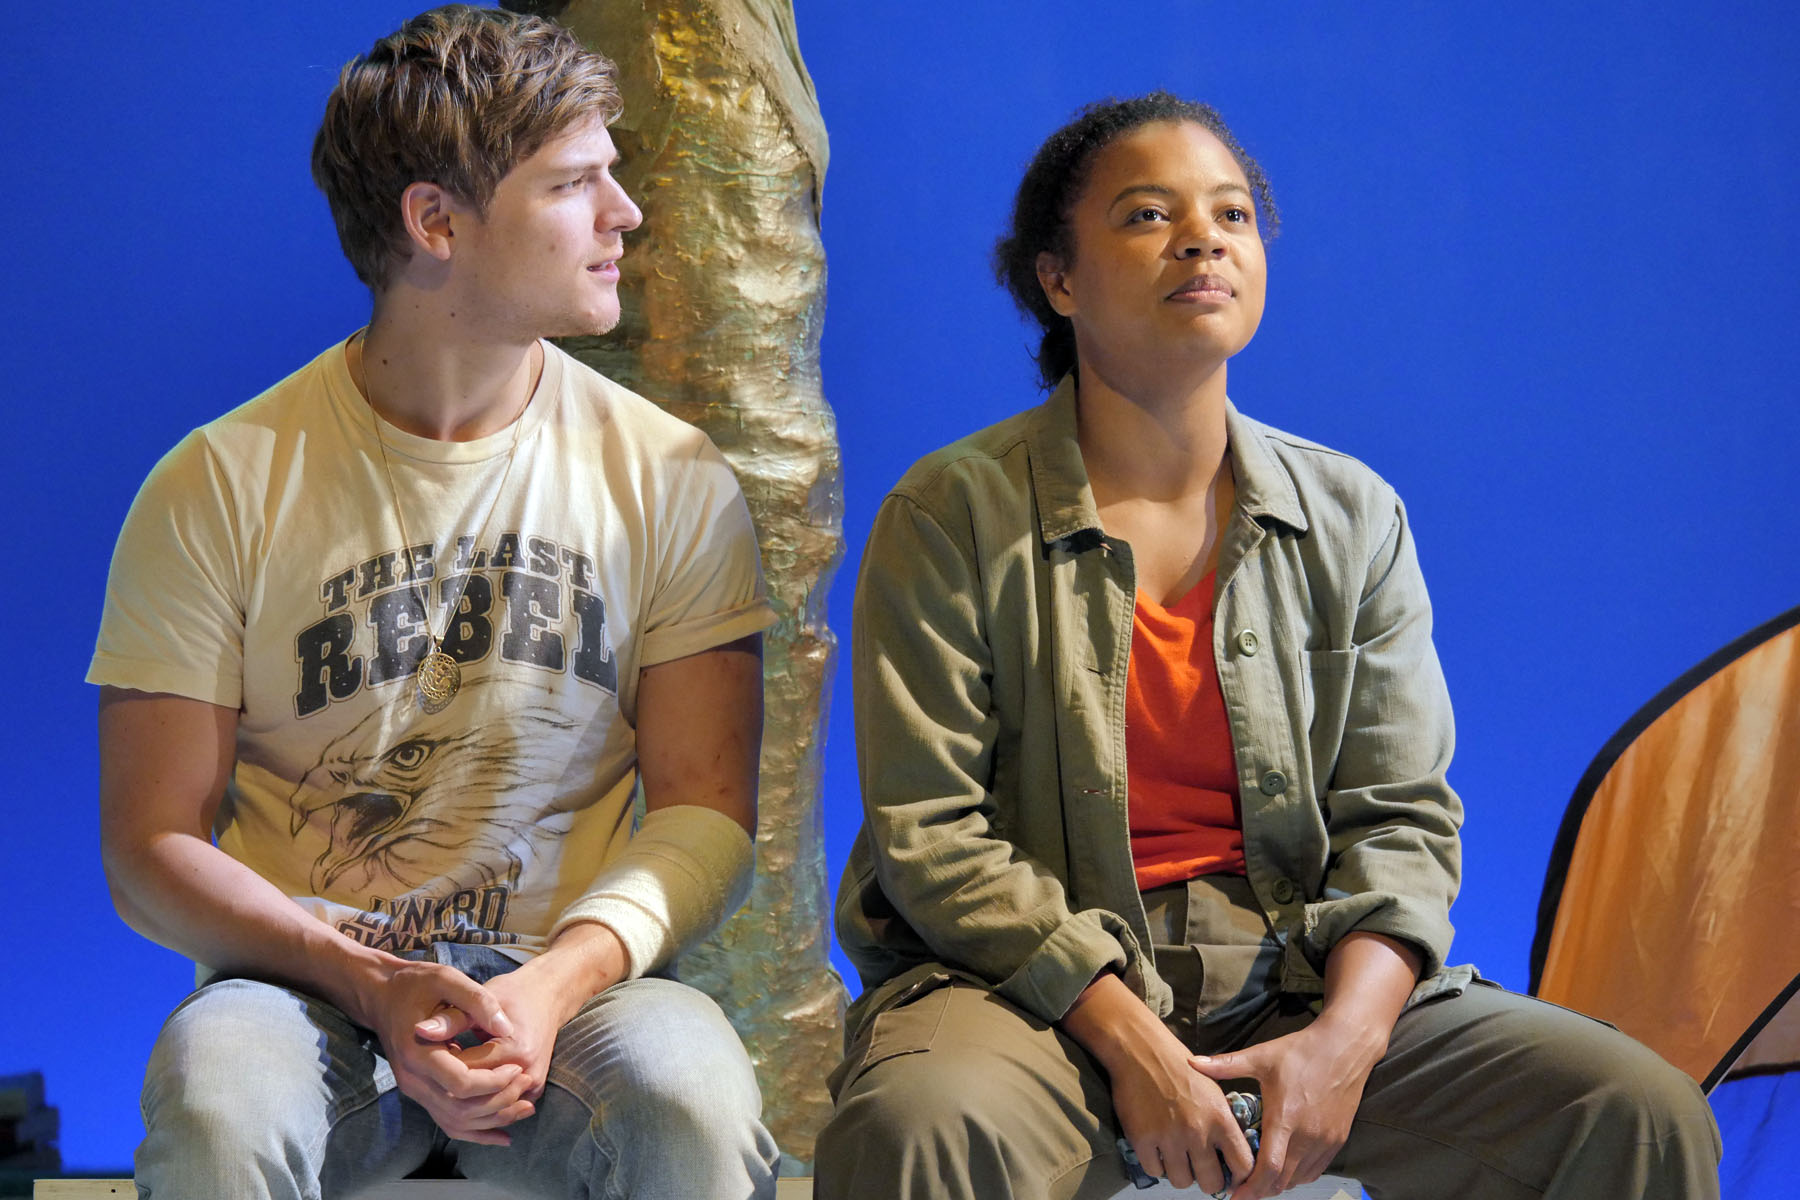 As You Like It at Theatre By The Lake. Nathan Hamilton (Orlando) and Jessica Hayles (Rosalind). Photo credit Keith Pattison (3)